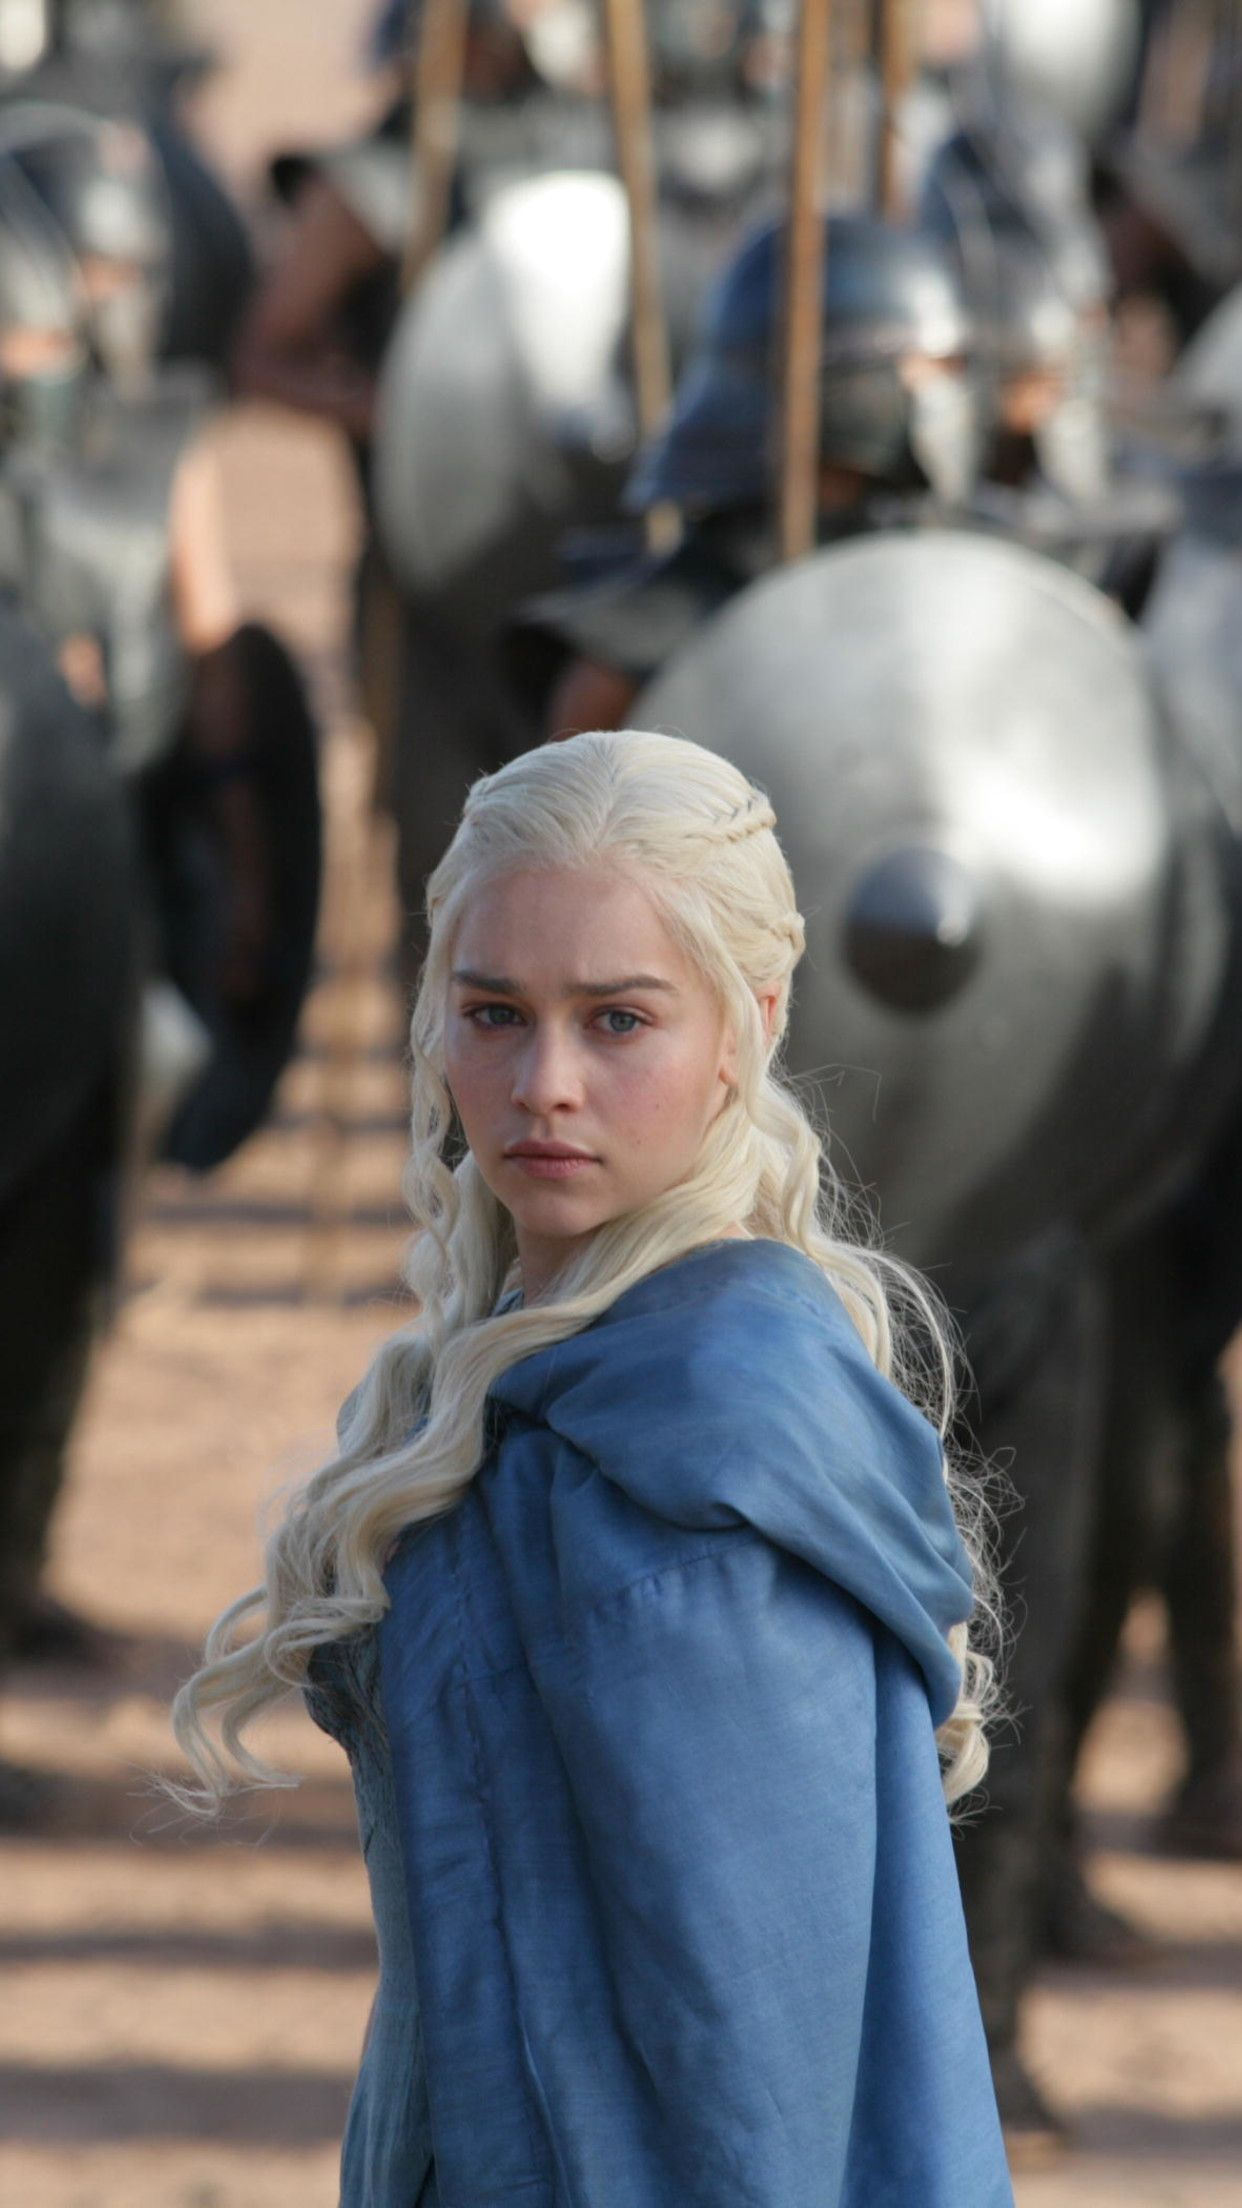 Wallpaper Download 1242x2208 Daenerys Targaryen And The Army Game Of Thrones Movie Wal Daenerys Targaryen Wallpaper Movie Wallpapers Game Of Throne Daenerys